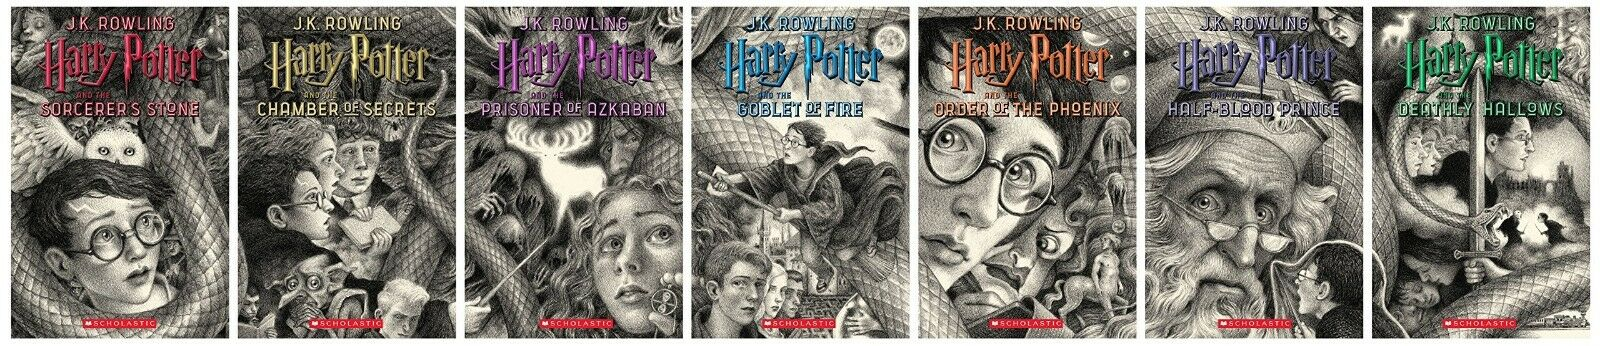 New  HARRY POTTER Books 1-7 Special Edition Boxed Set Paperback by J.K. Rowling